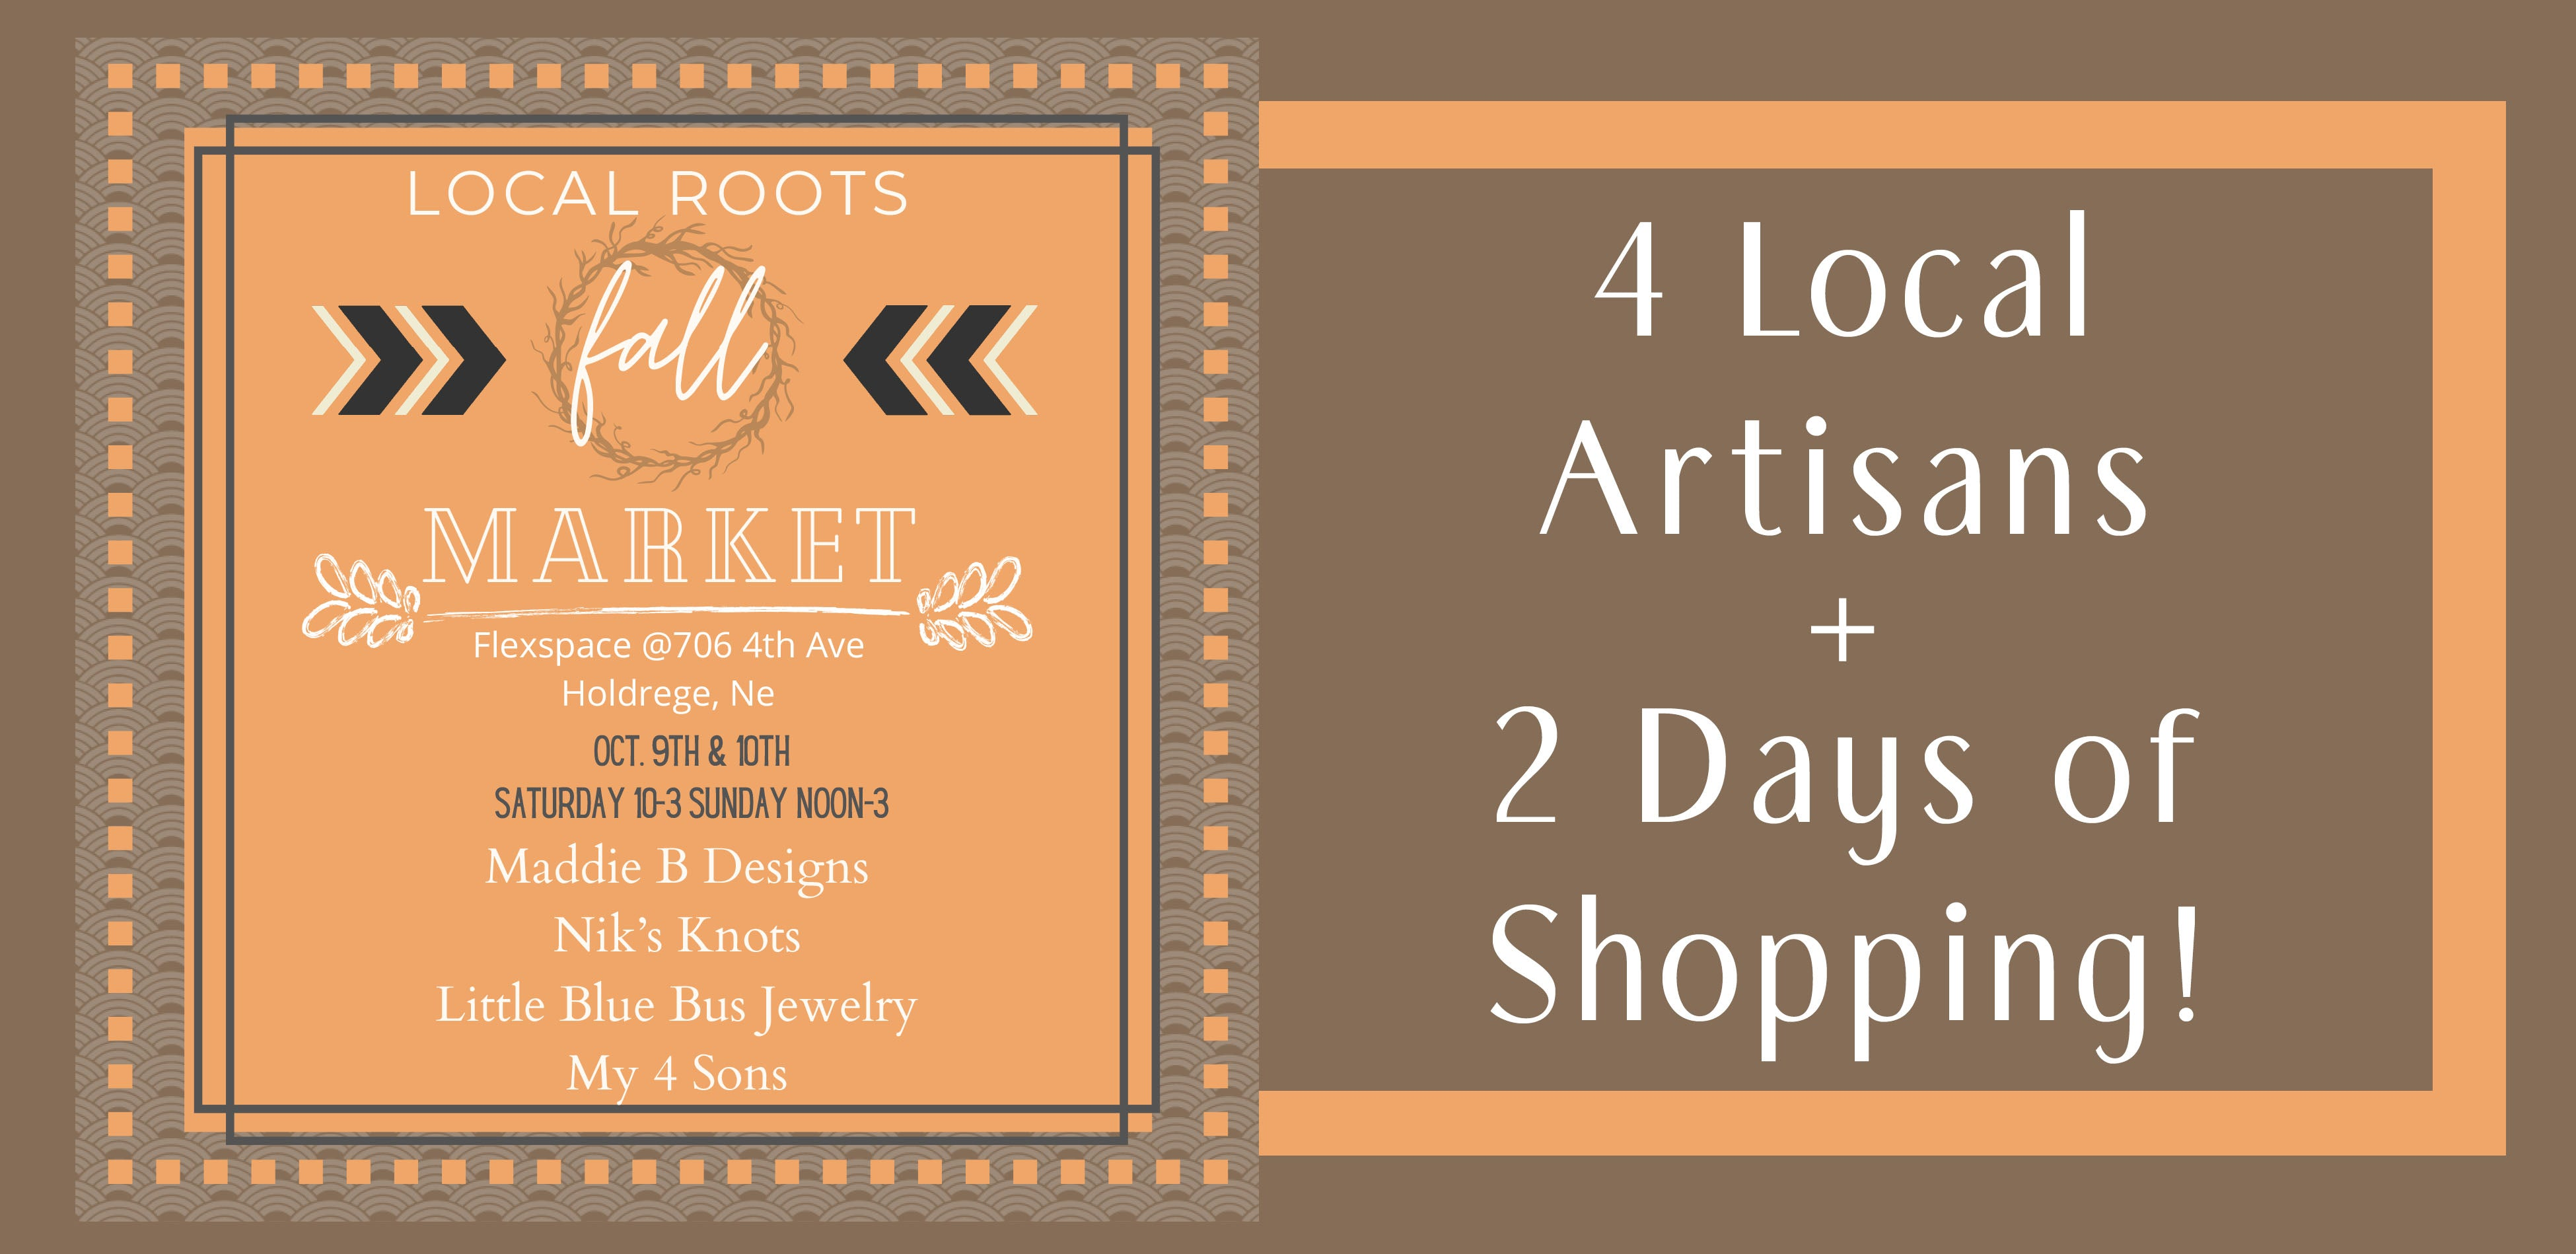 Local Roots Fall Market October 9 and 10 in Holdrege Nebraska